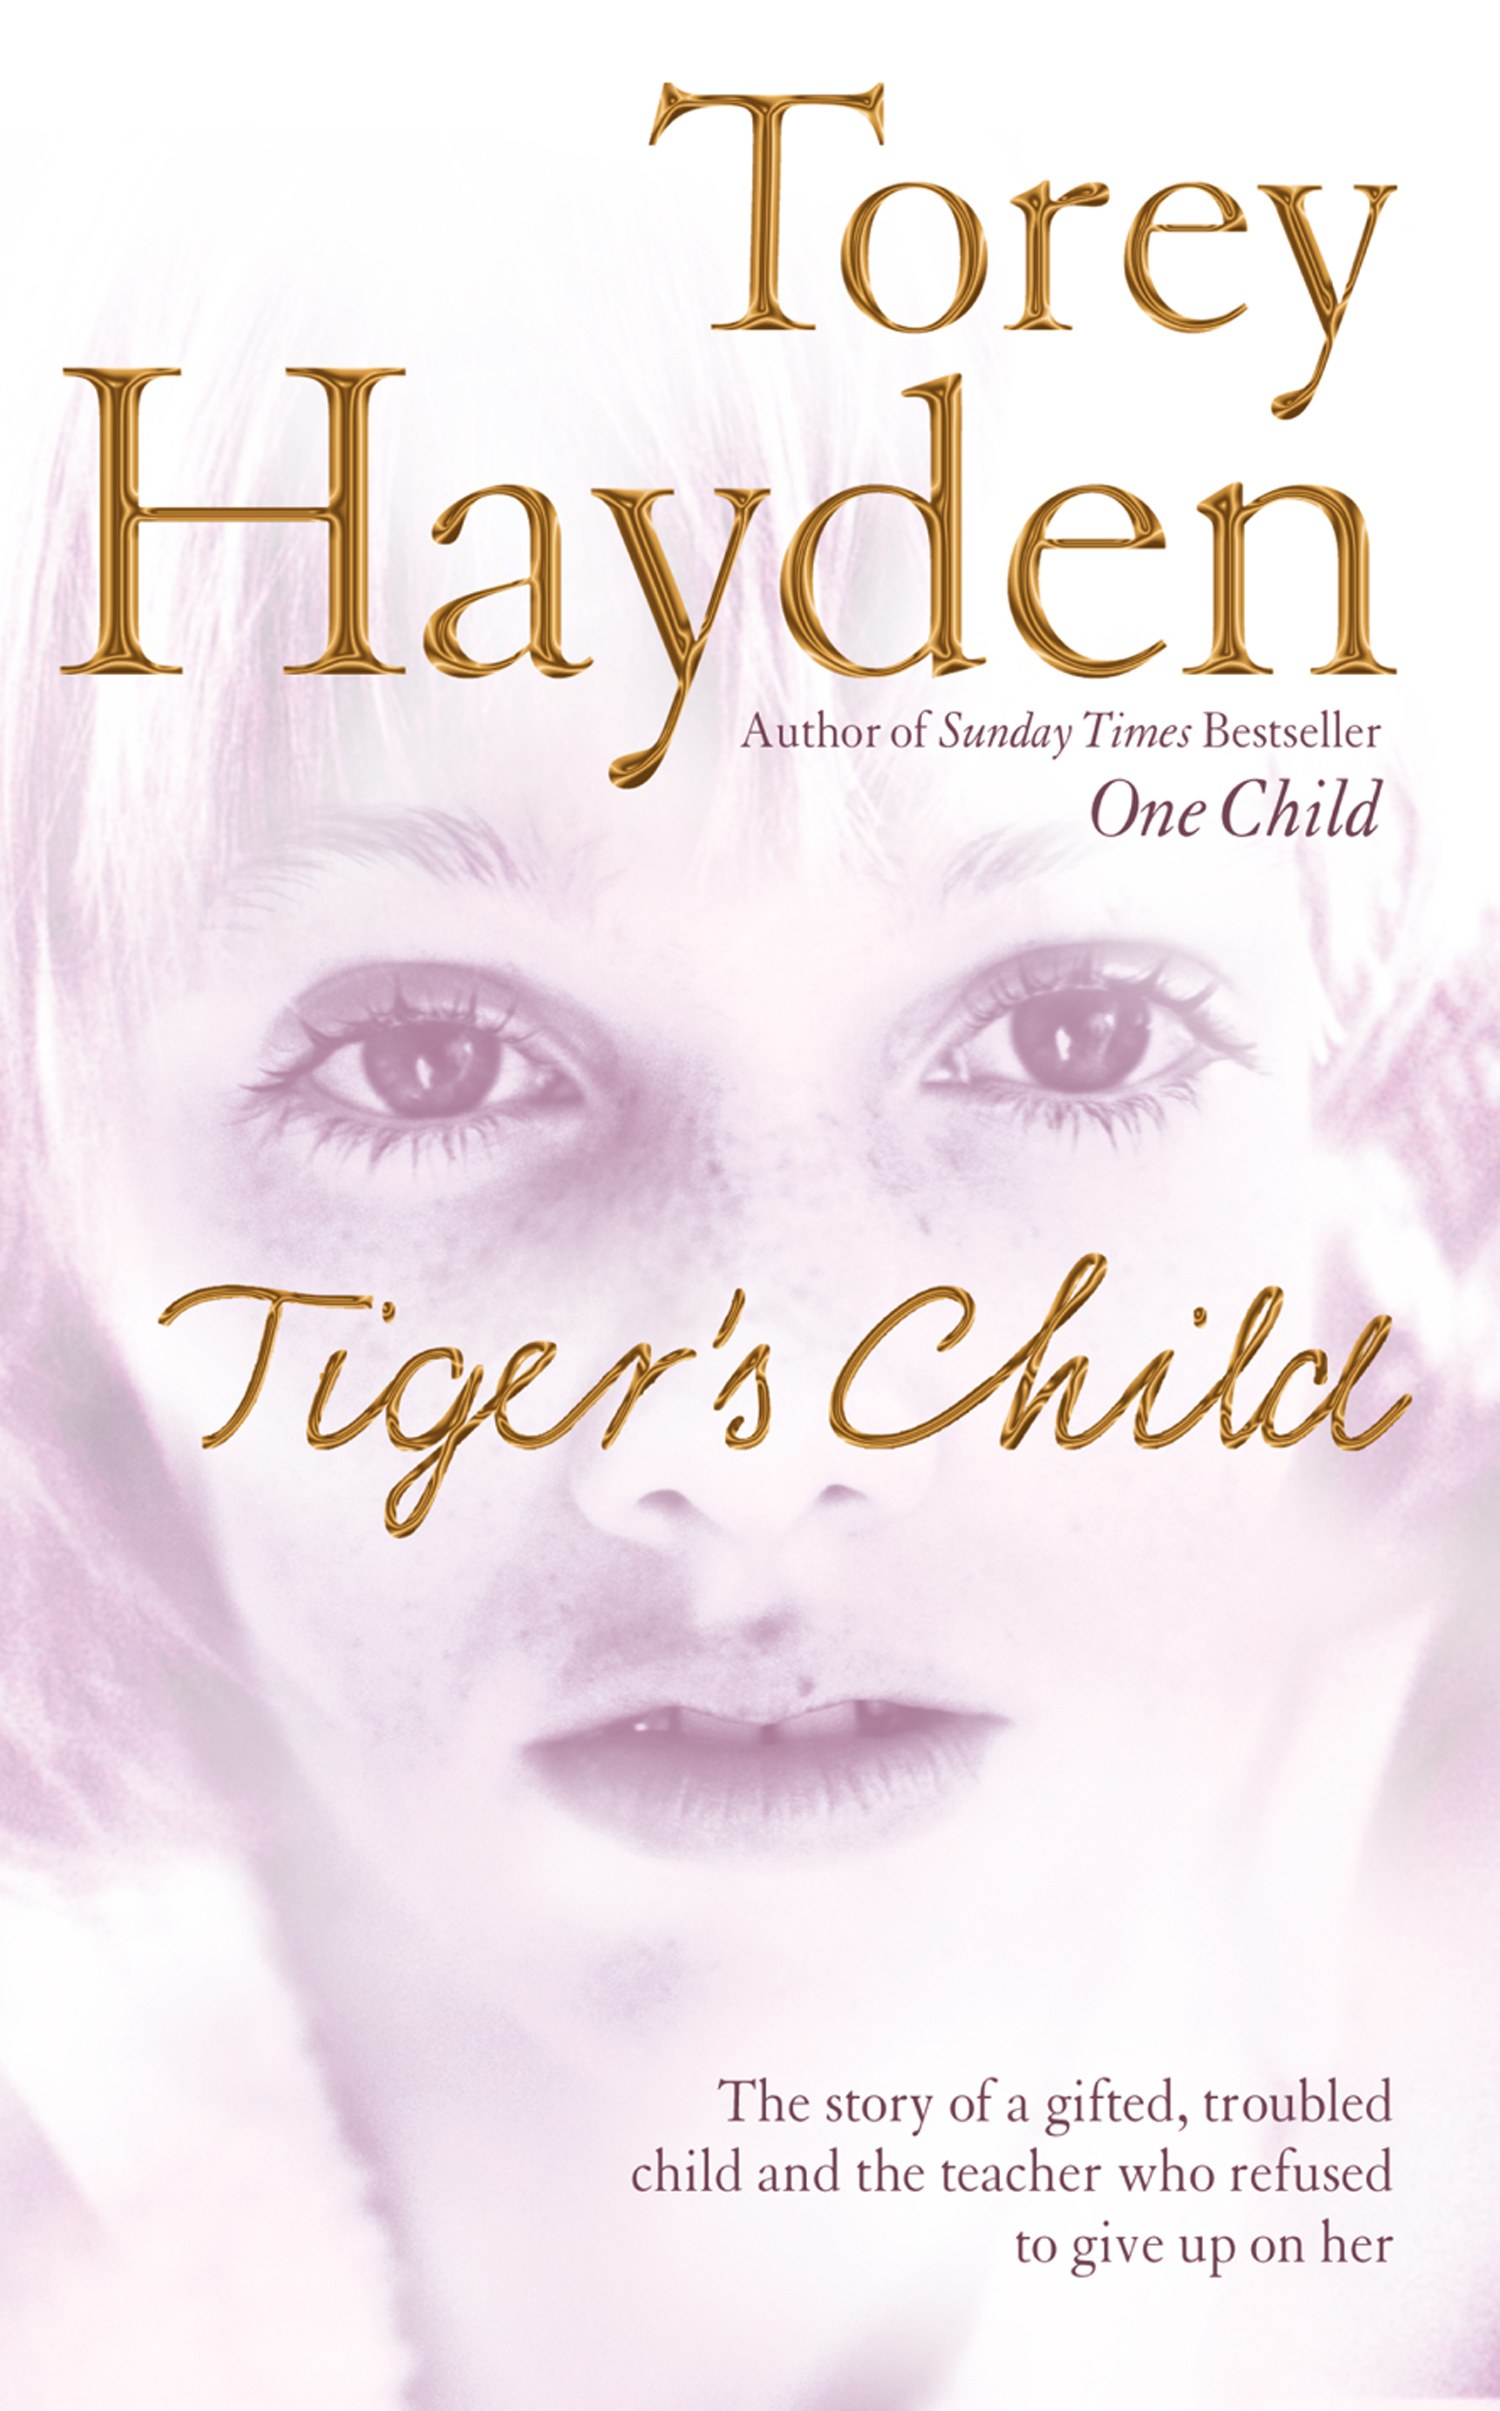 The Tiger's Child: The story of a gifted, troubled child and the teacher who refused to give up on her